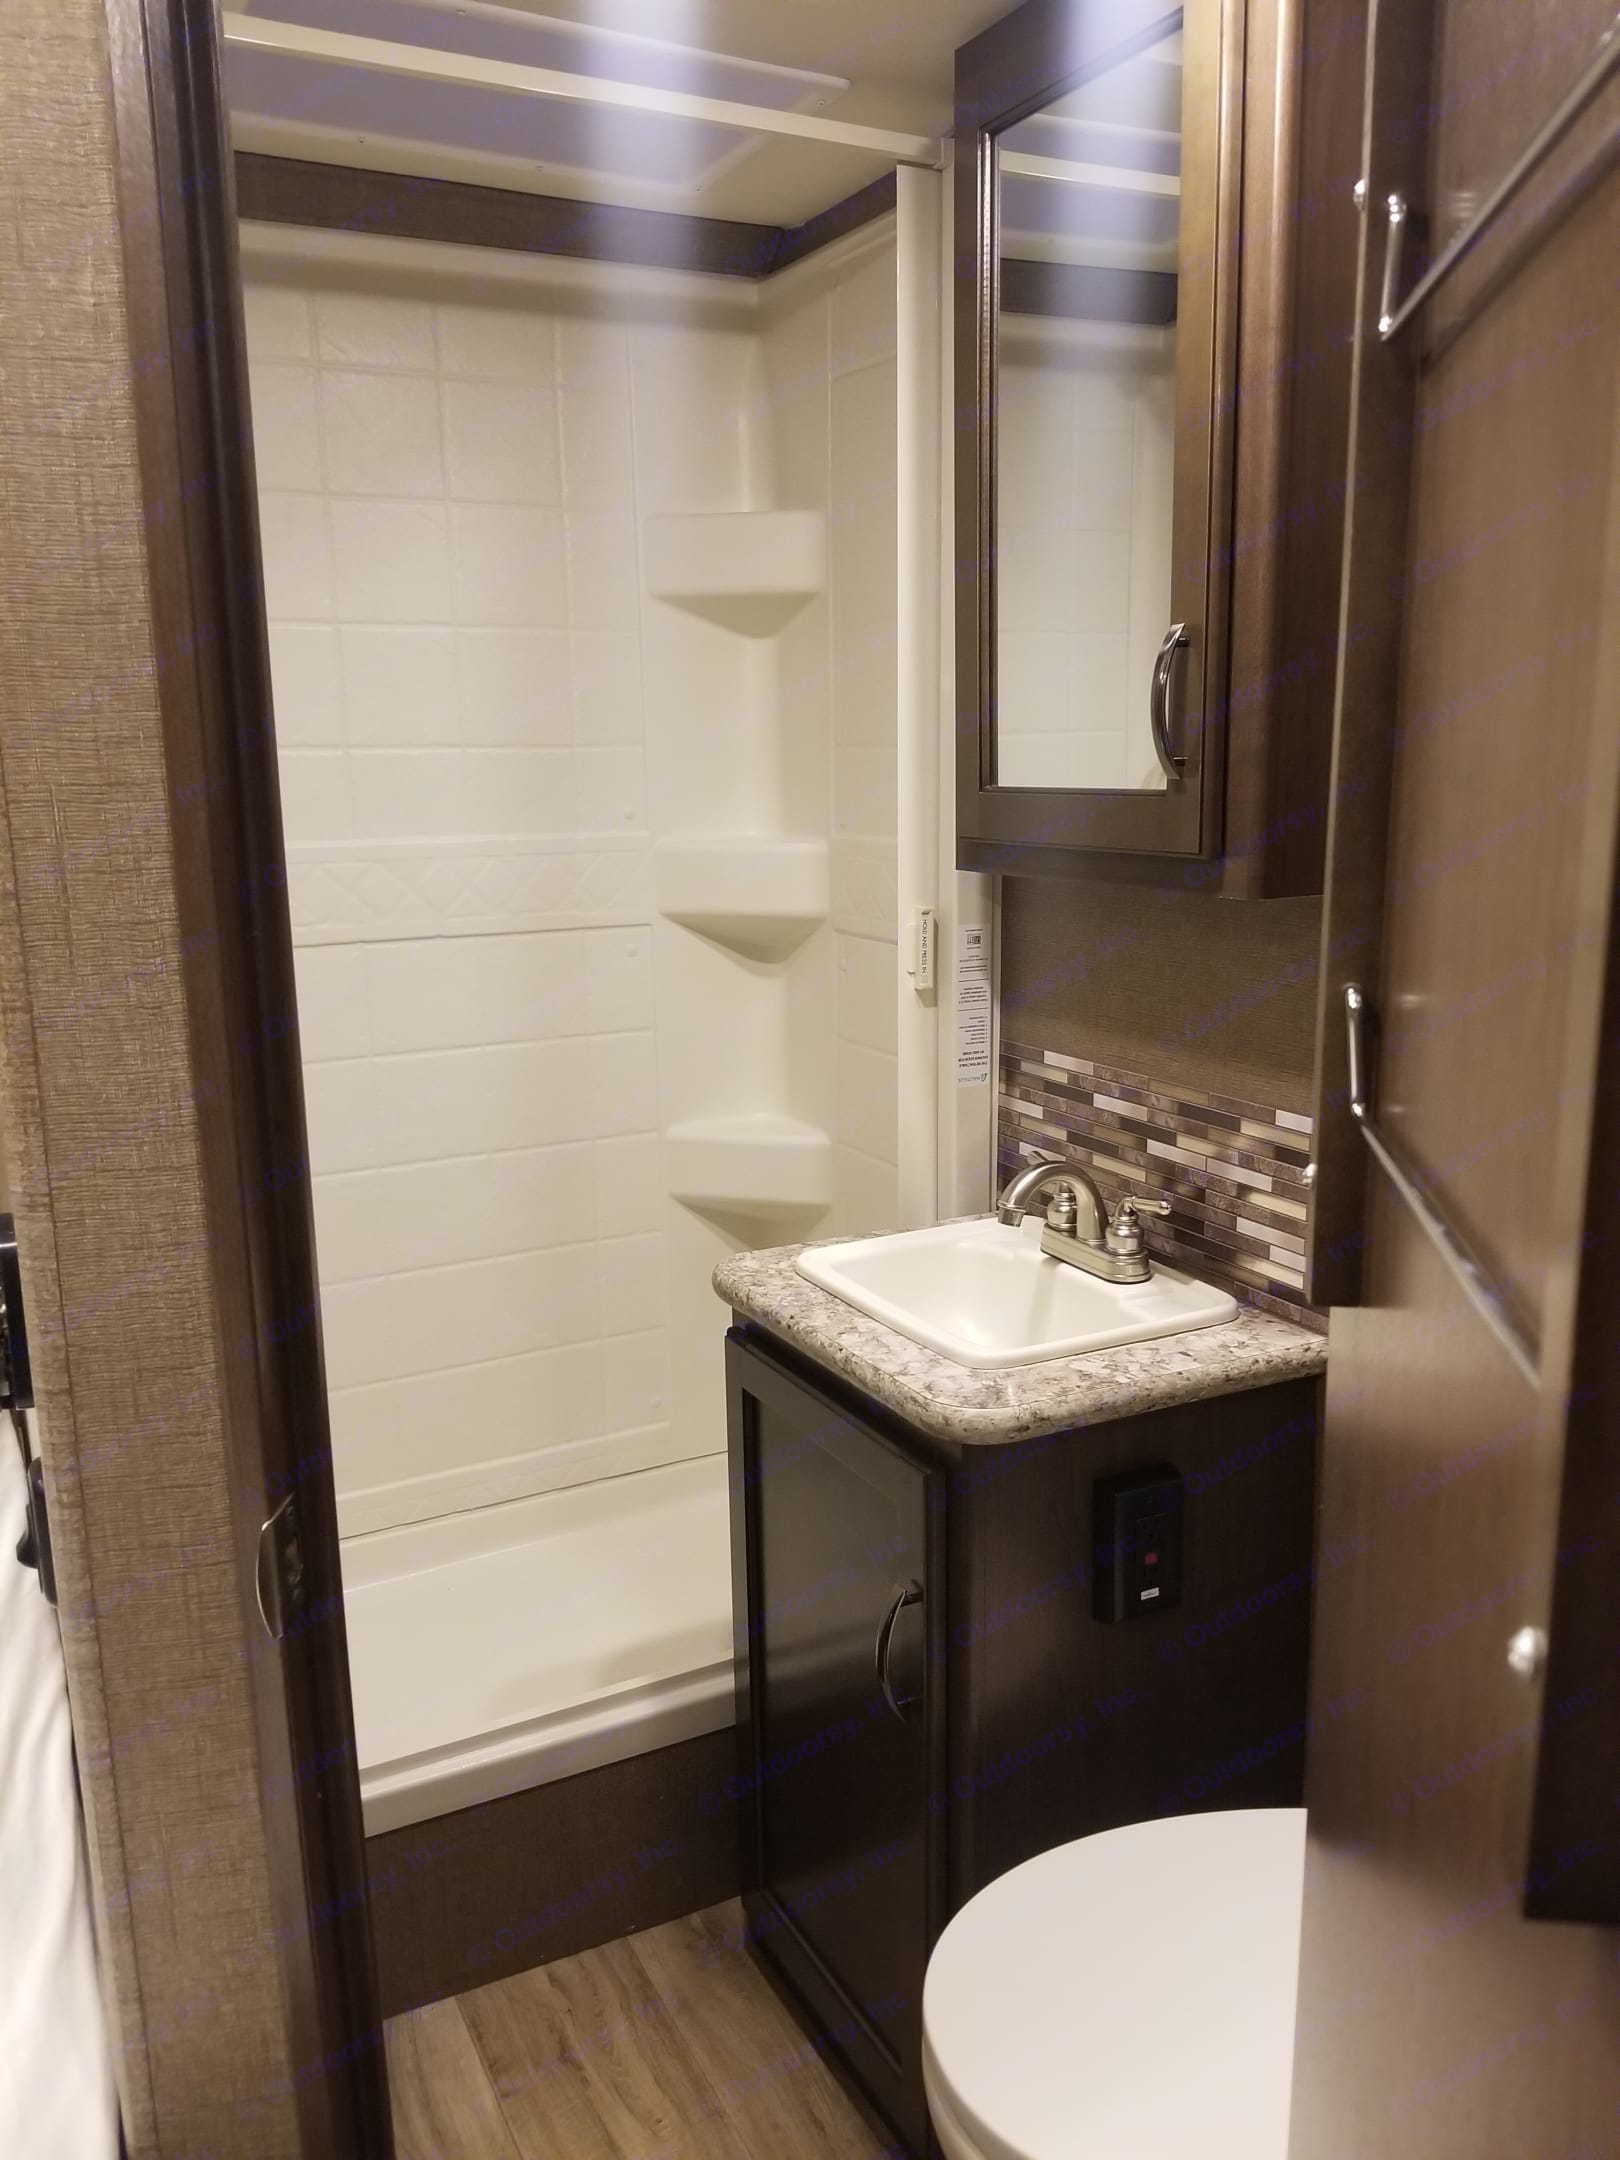 Standing shower includes slide out shower door. The flushable RV toilet is just in front of the sink on the right side.. Thor Motor Coach Freedom Elite 2017